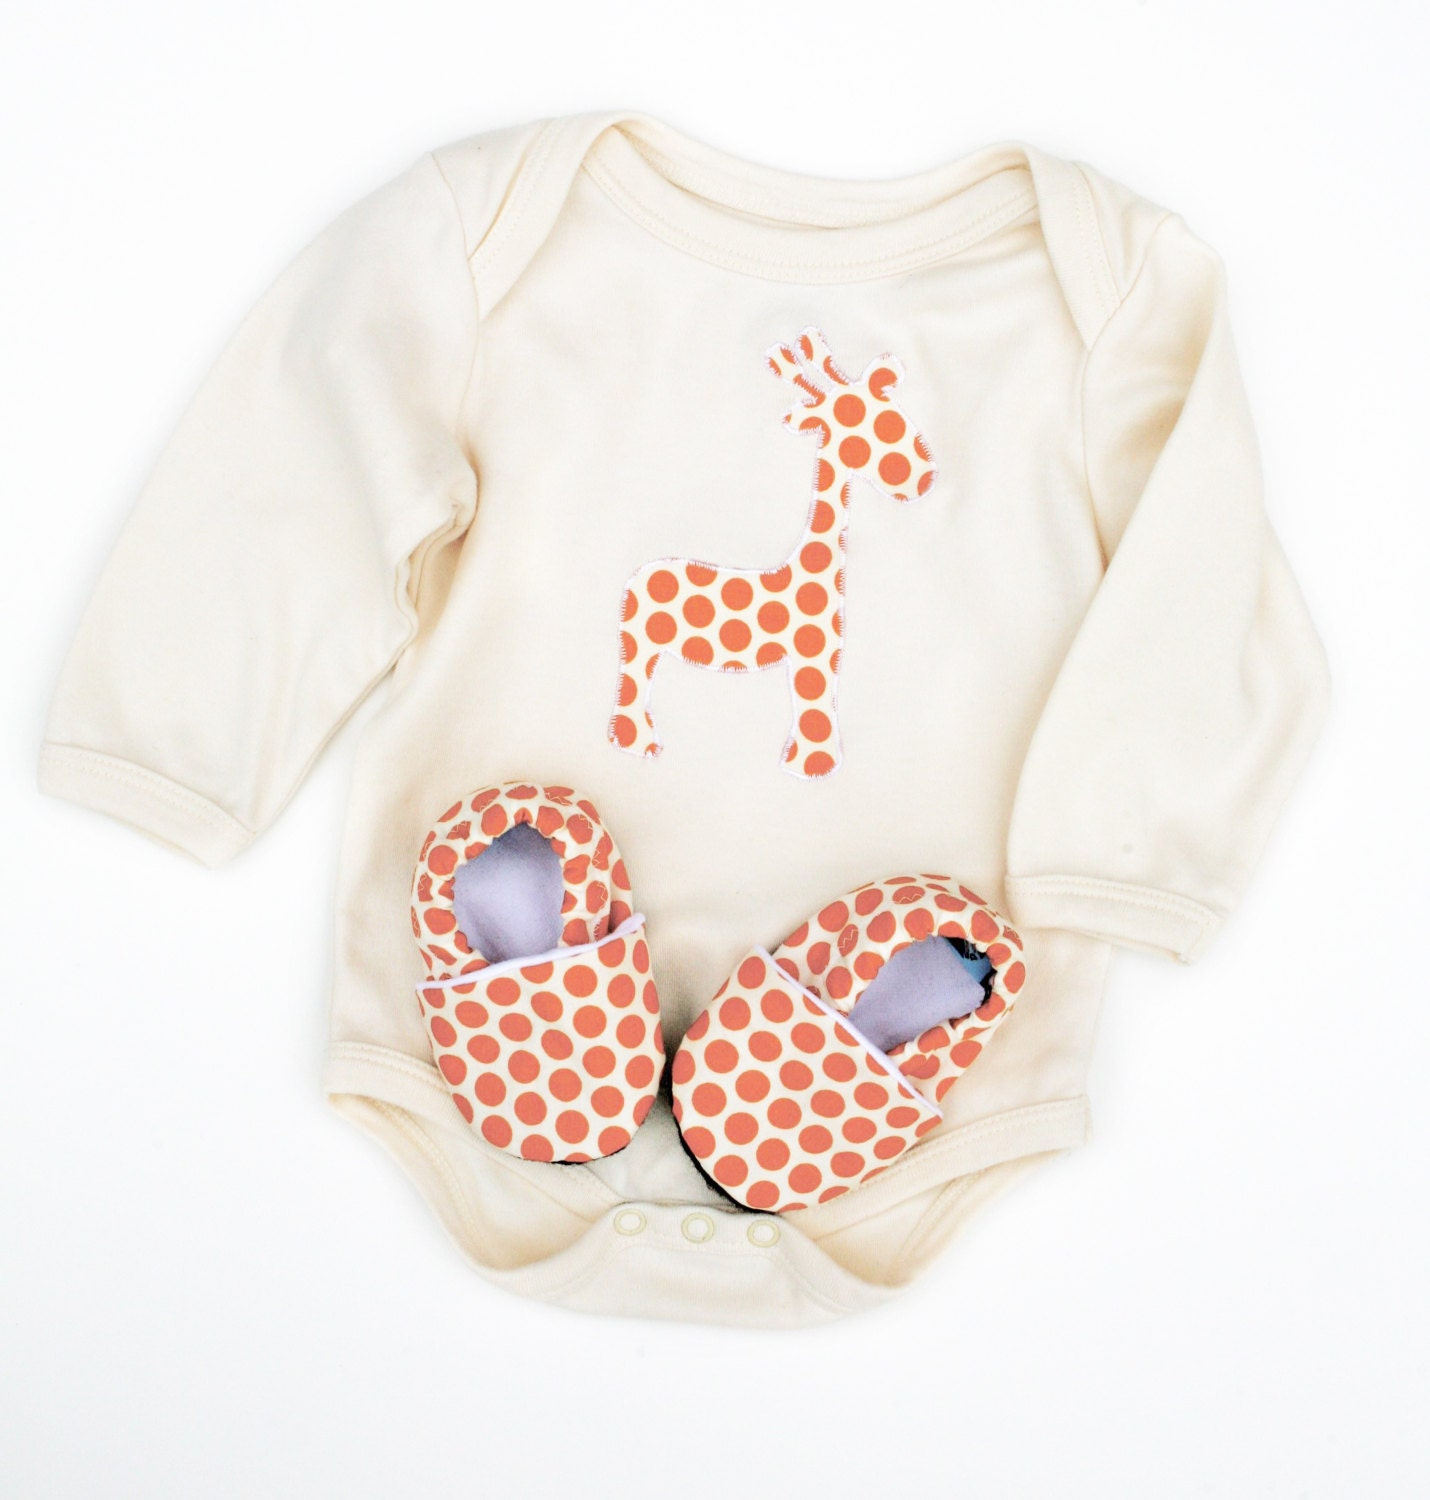 Shop for Giraffe Baby Clothes & Accessories products from baby hats and blankets to baby bodysuits and t-shirts. We have the perfect gift for every newborn.